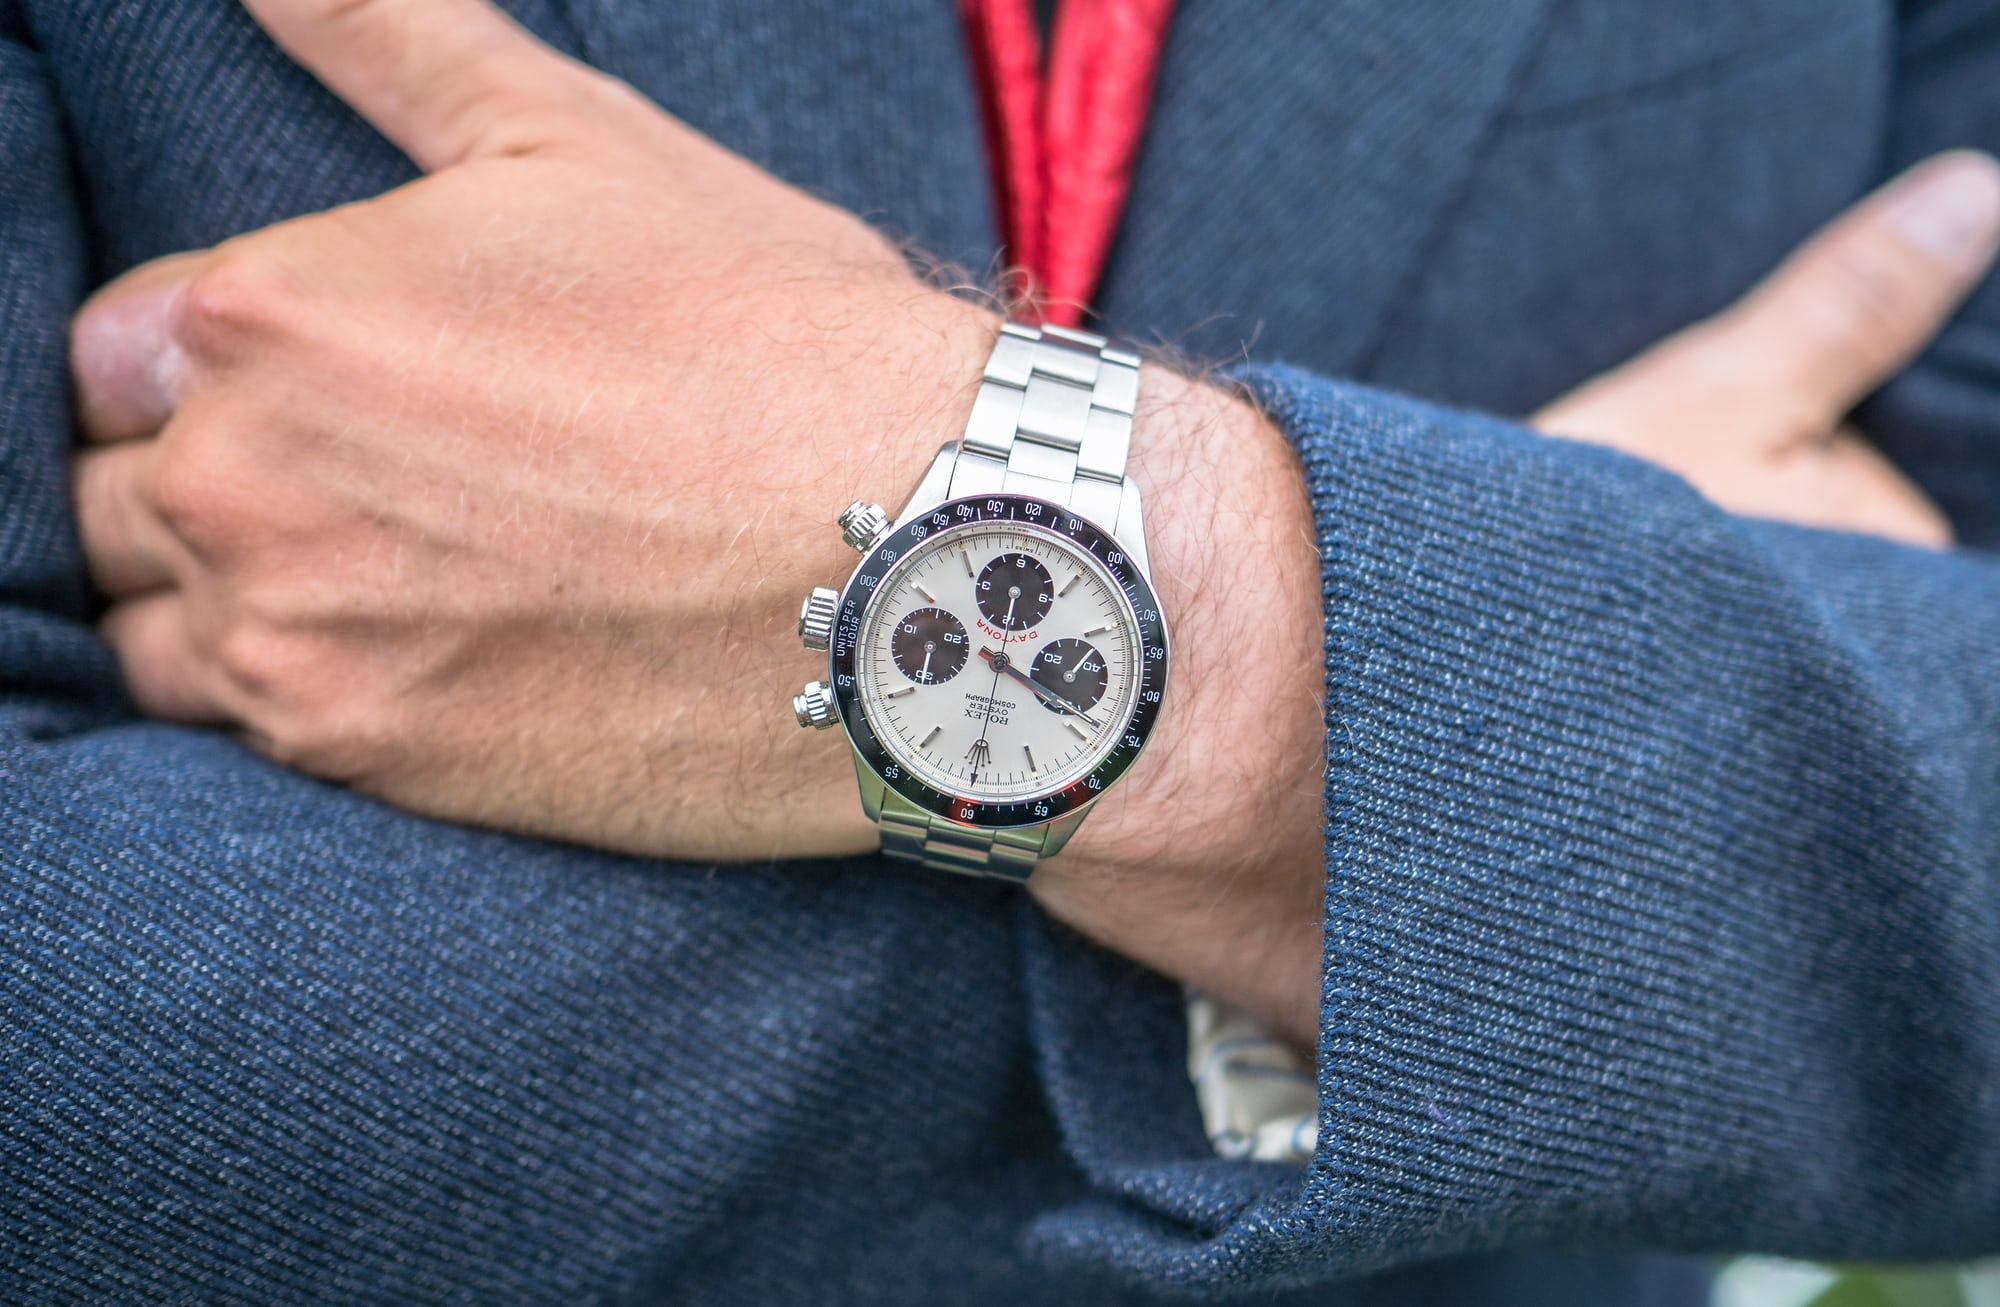 Photo Report: Car And Watch Spotting At Monterey Car Week 2017 Photo Report: Car And Watch Spotting At Monterey Car Week 2017 Monterey Car Week 2017 Watch Spotting 37